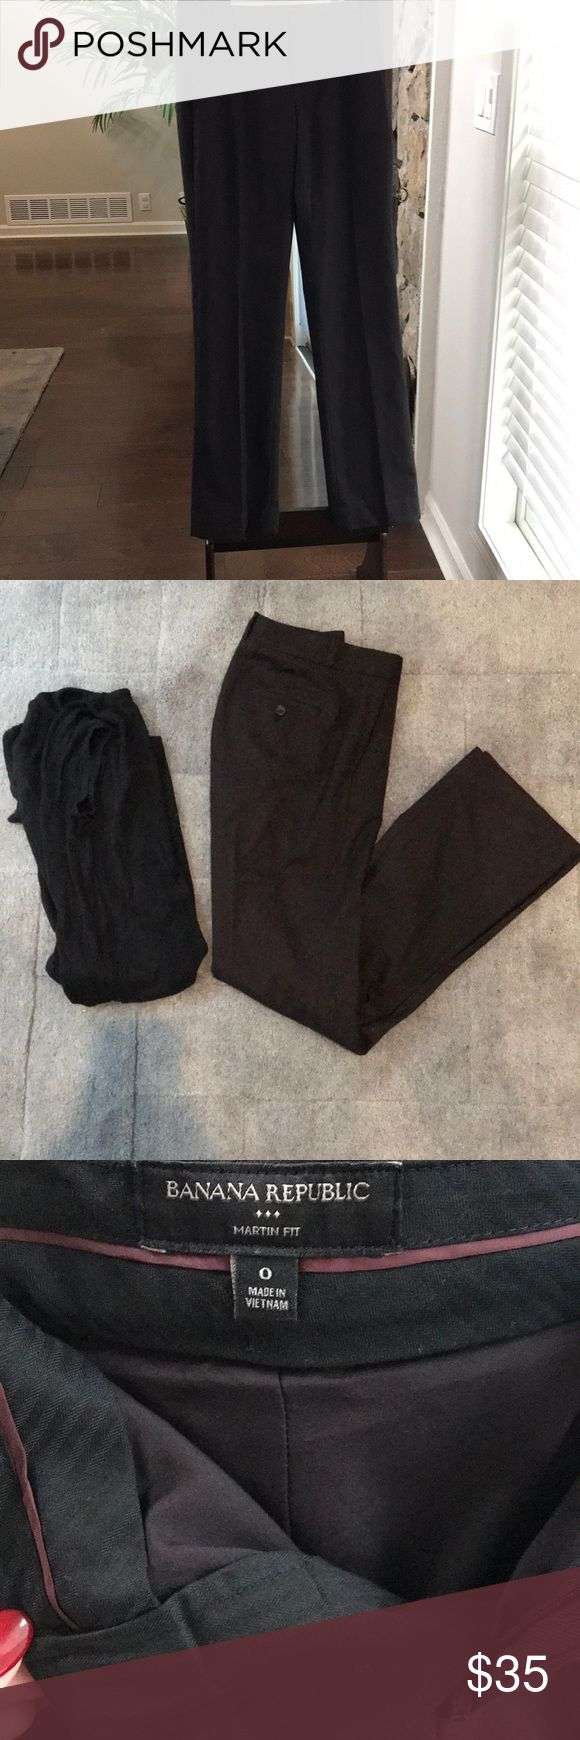 Banana Republic Martin Fit Straight Leg Pant Deep brown/aubergine color. Picture with light color is posted to show cut and fit. Only worn 1 time. Great Condition. Drycleaned. Lined. Moving soon, make me an offer! Included a pic of the pants next to a black dress for color comparison. Banana Republic Pants Straight Leg